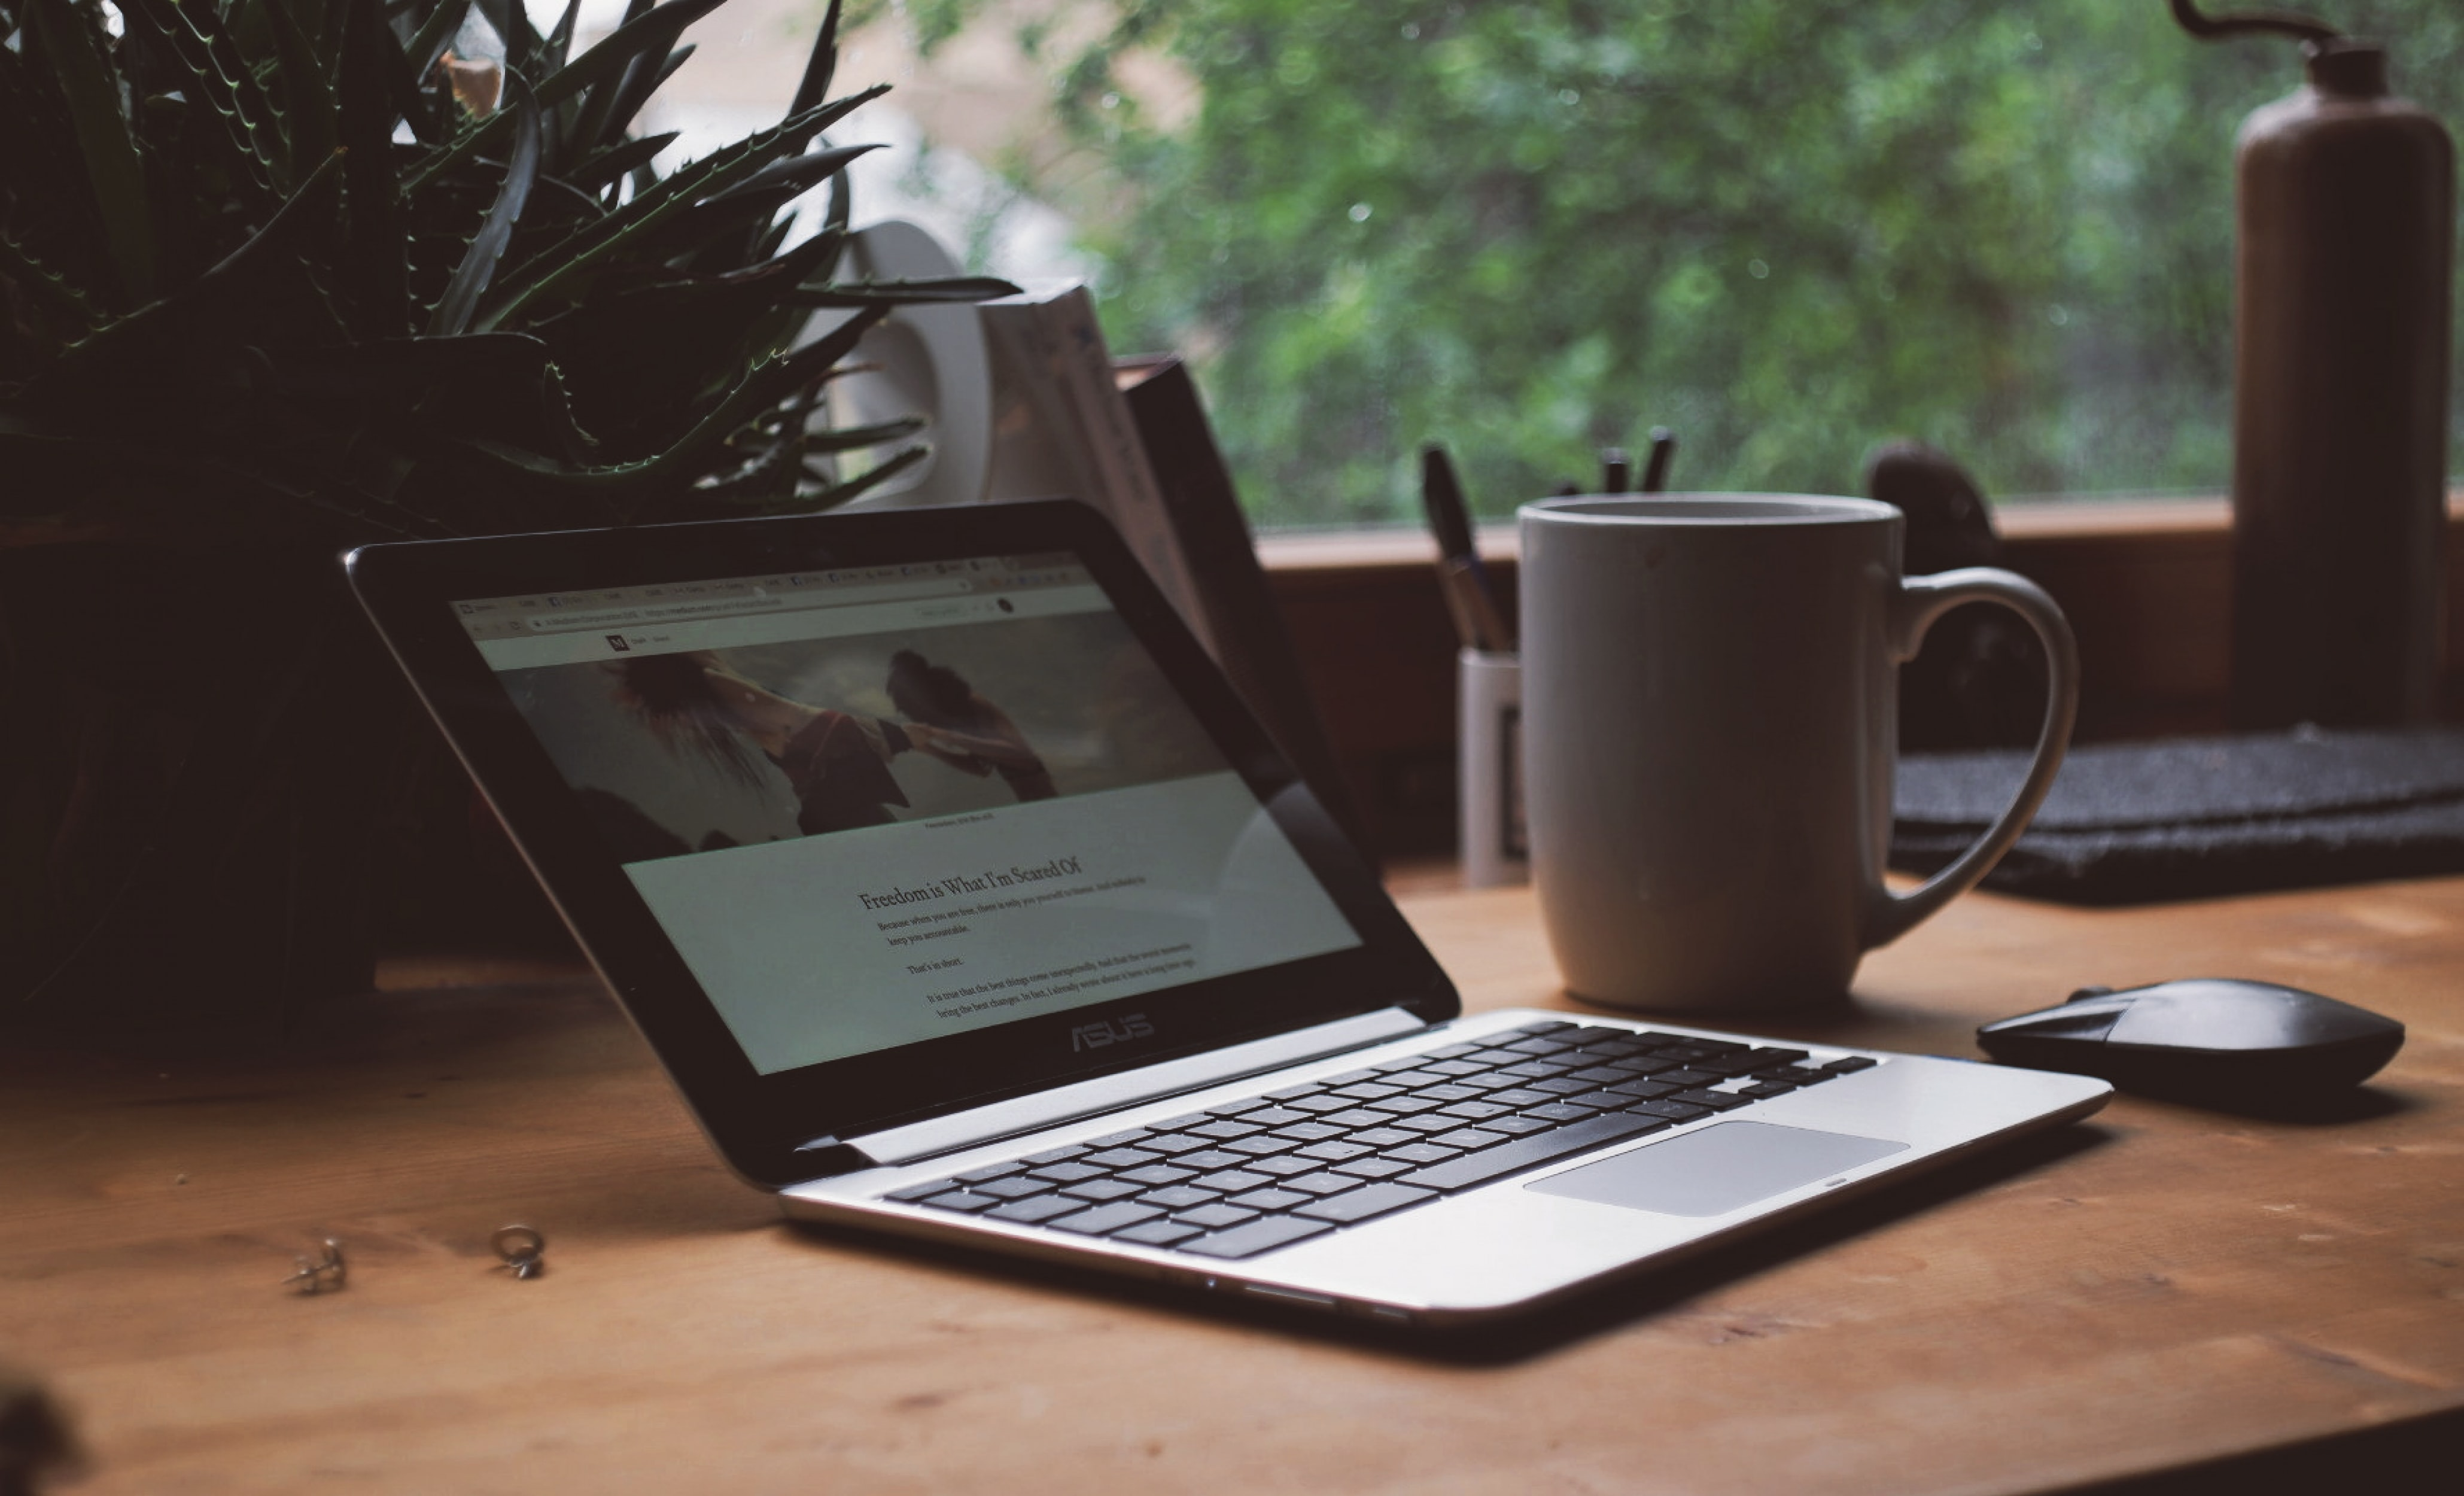 Working from home? 9 tips for home office set-up